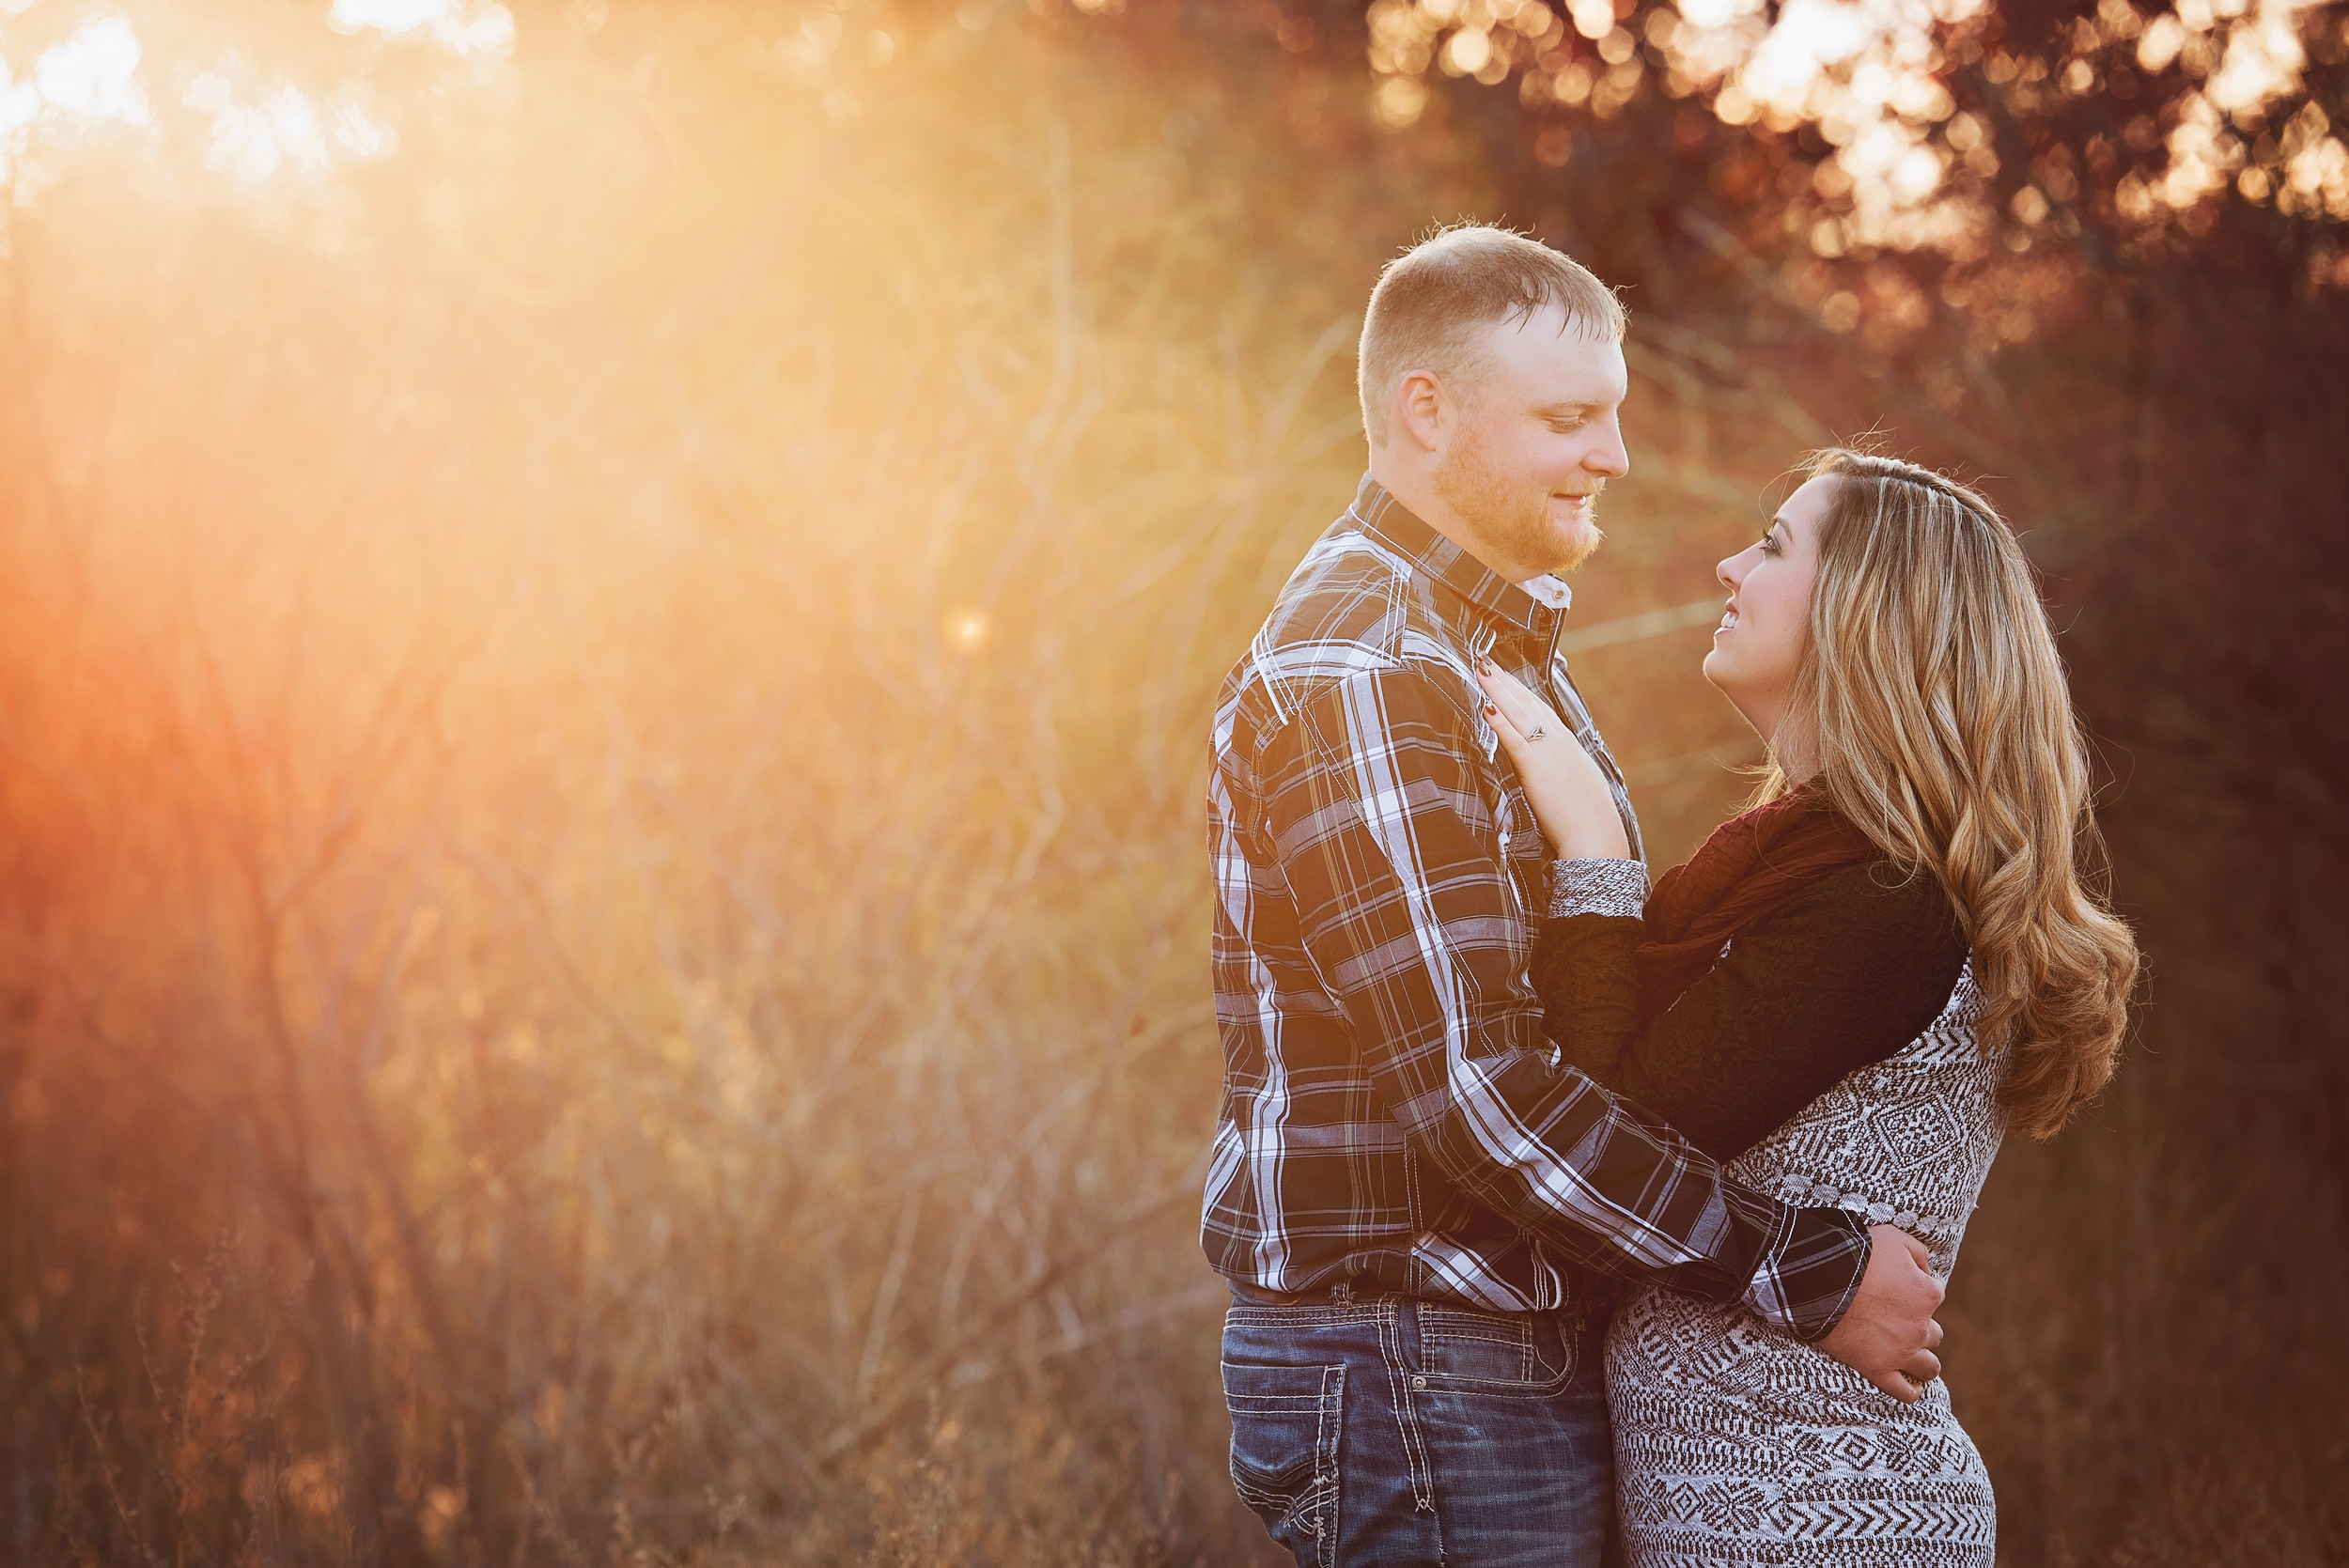 engagement-photography-gardencity-ks-3.jpg